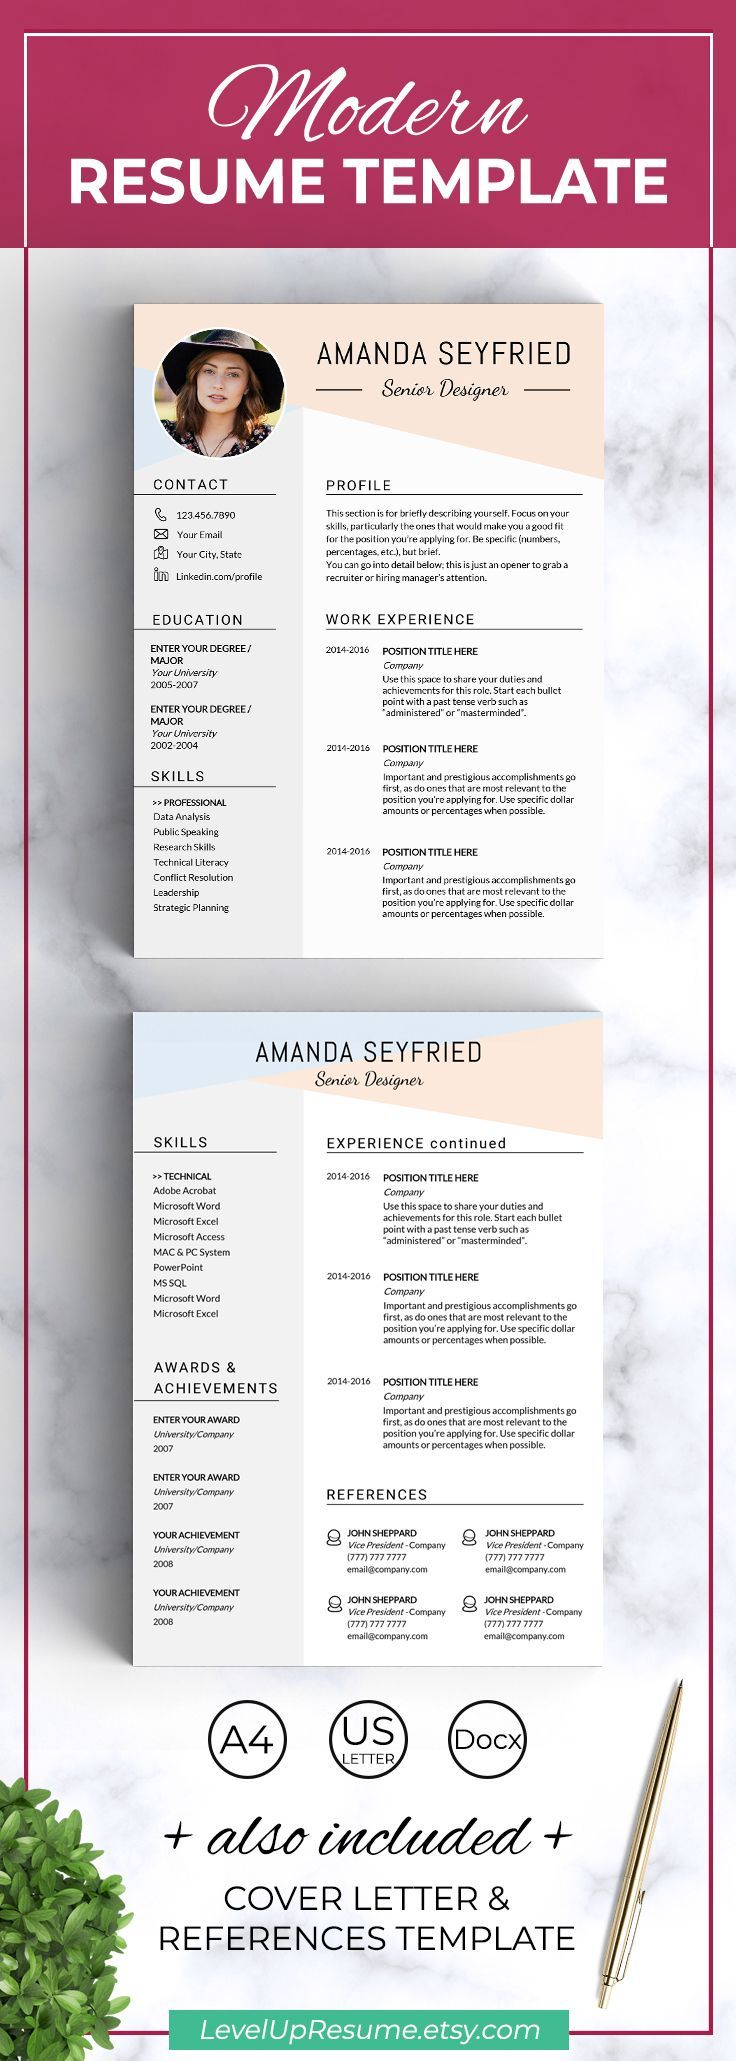 Resume Template Ms Word Check Out My New Creative Resume Template For Microsoft Word In A4